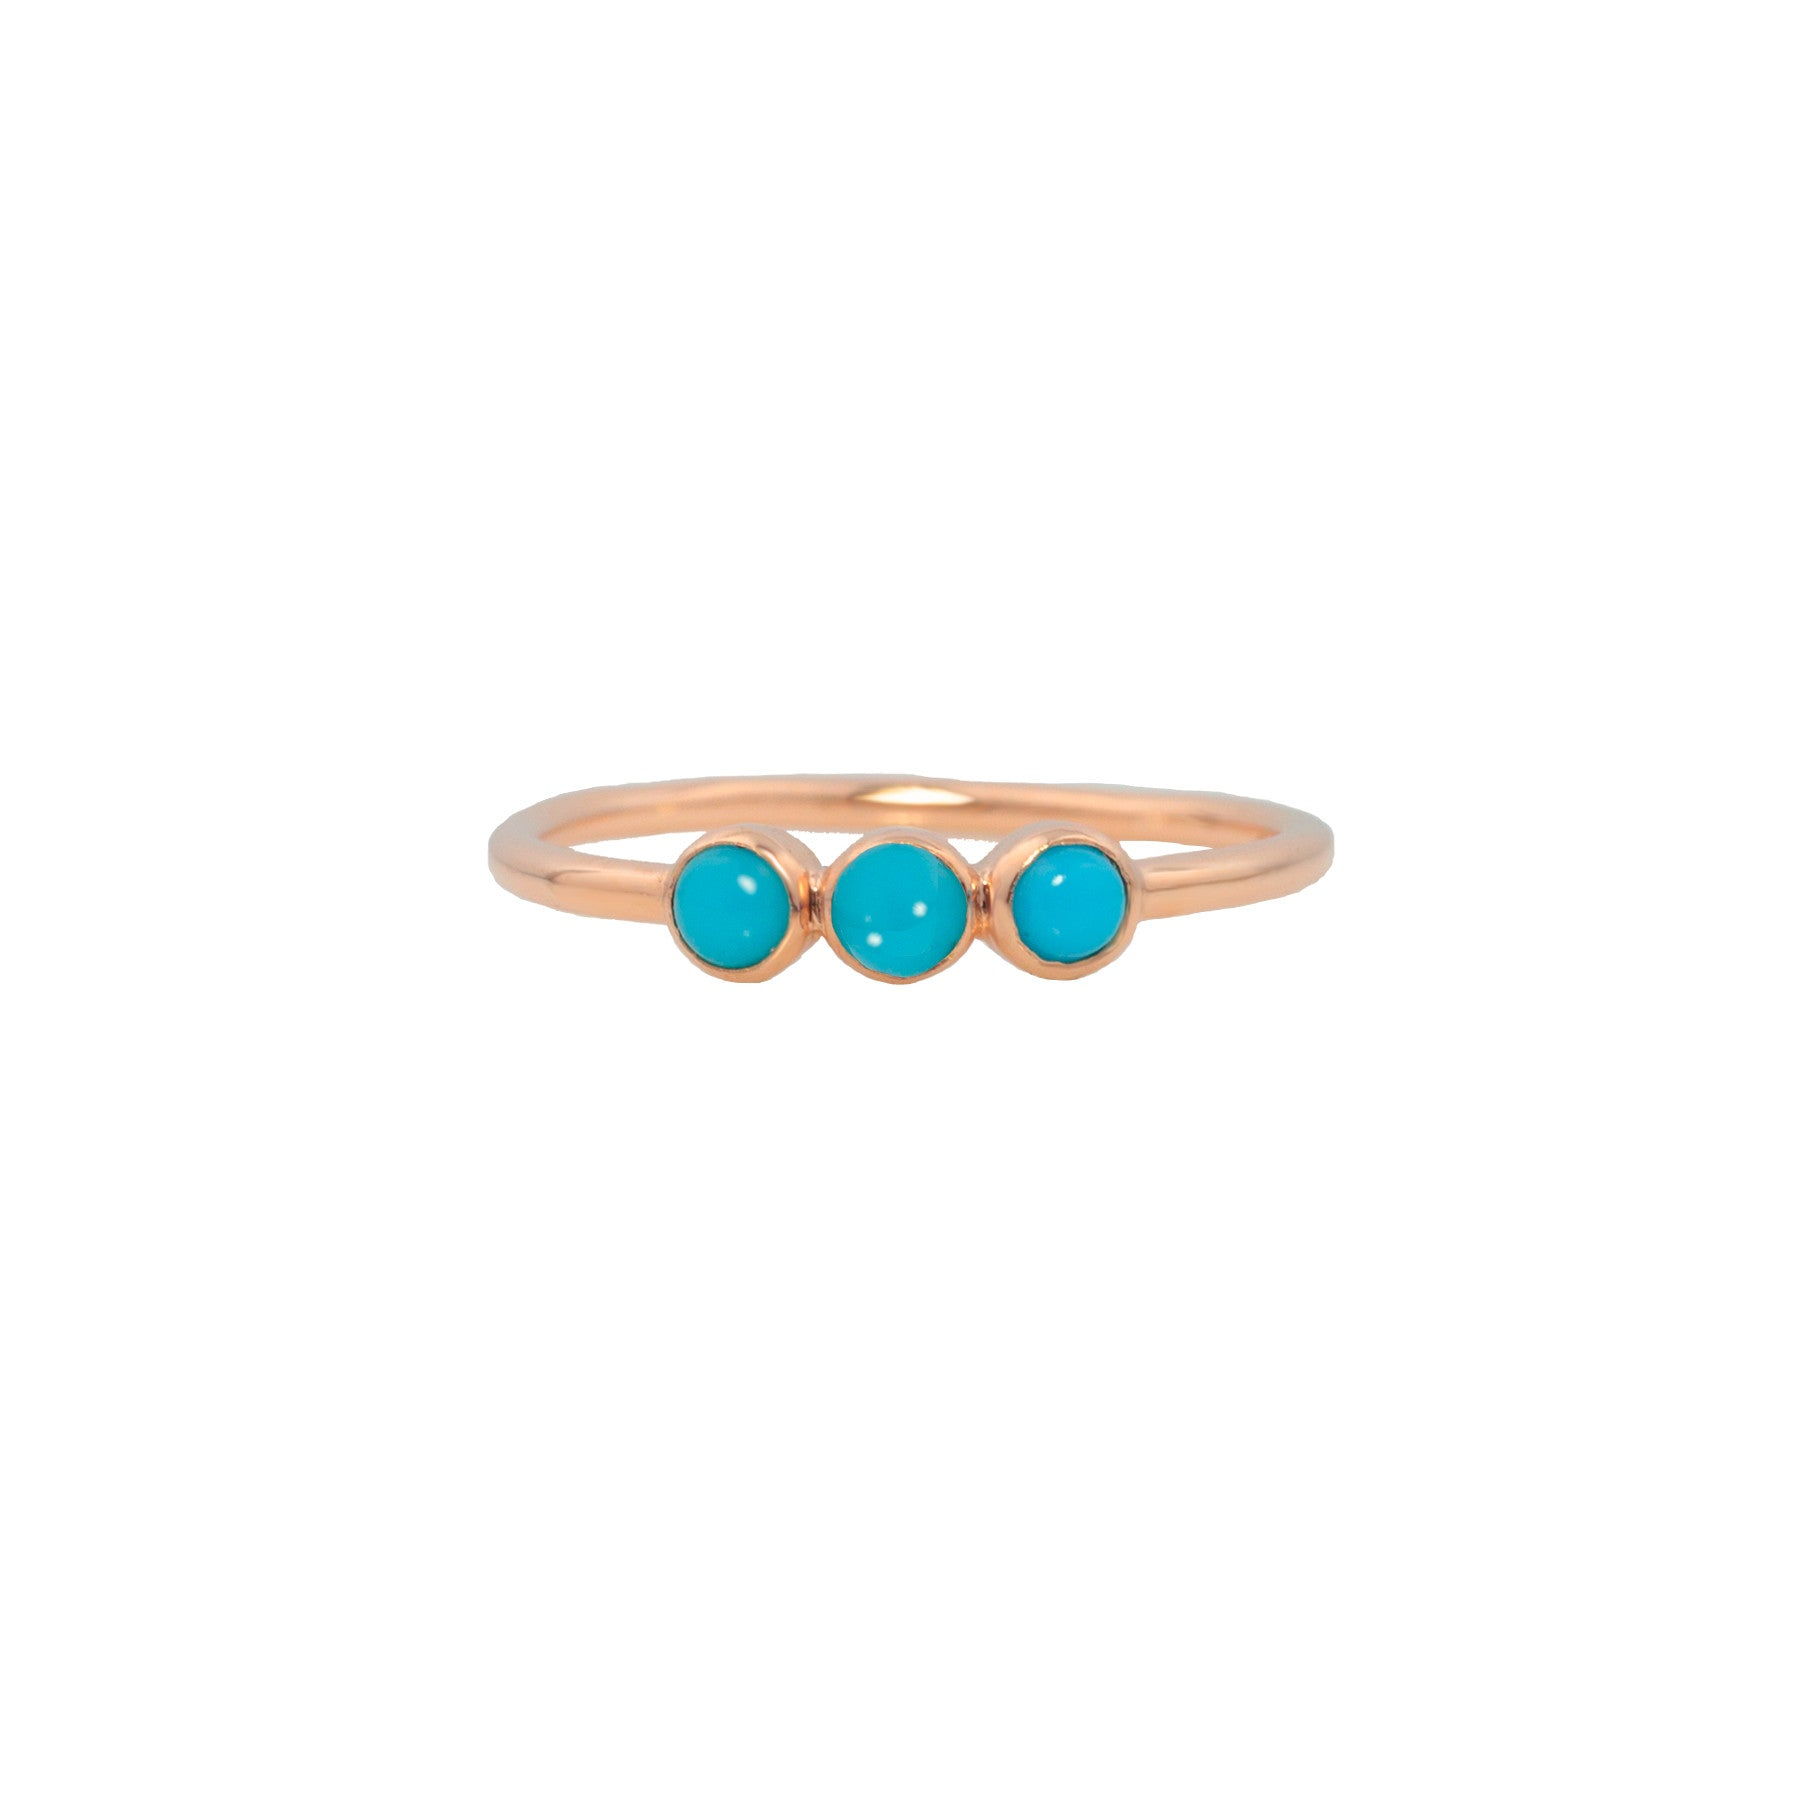 THREE SISTERS RING IN TURQUOISE